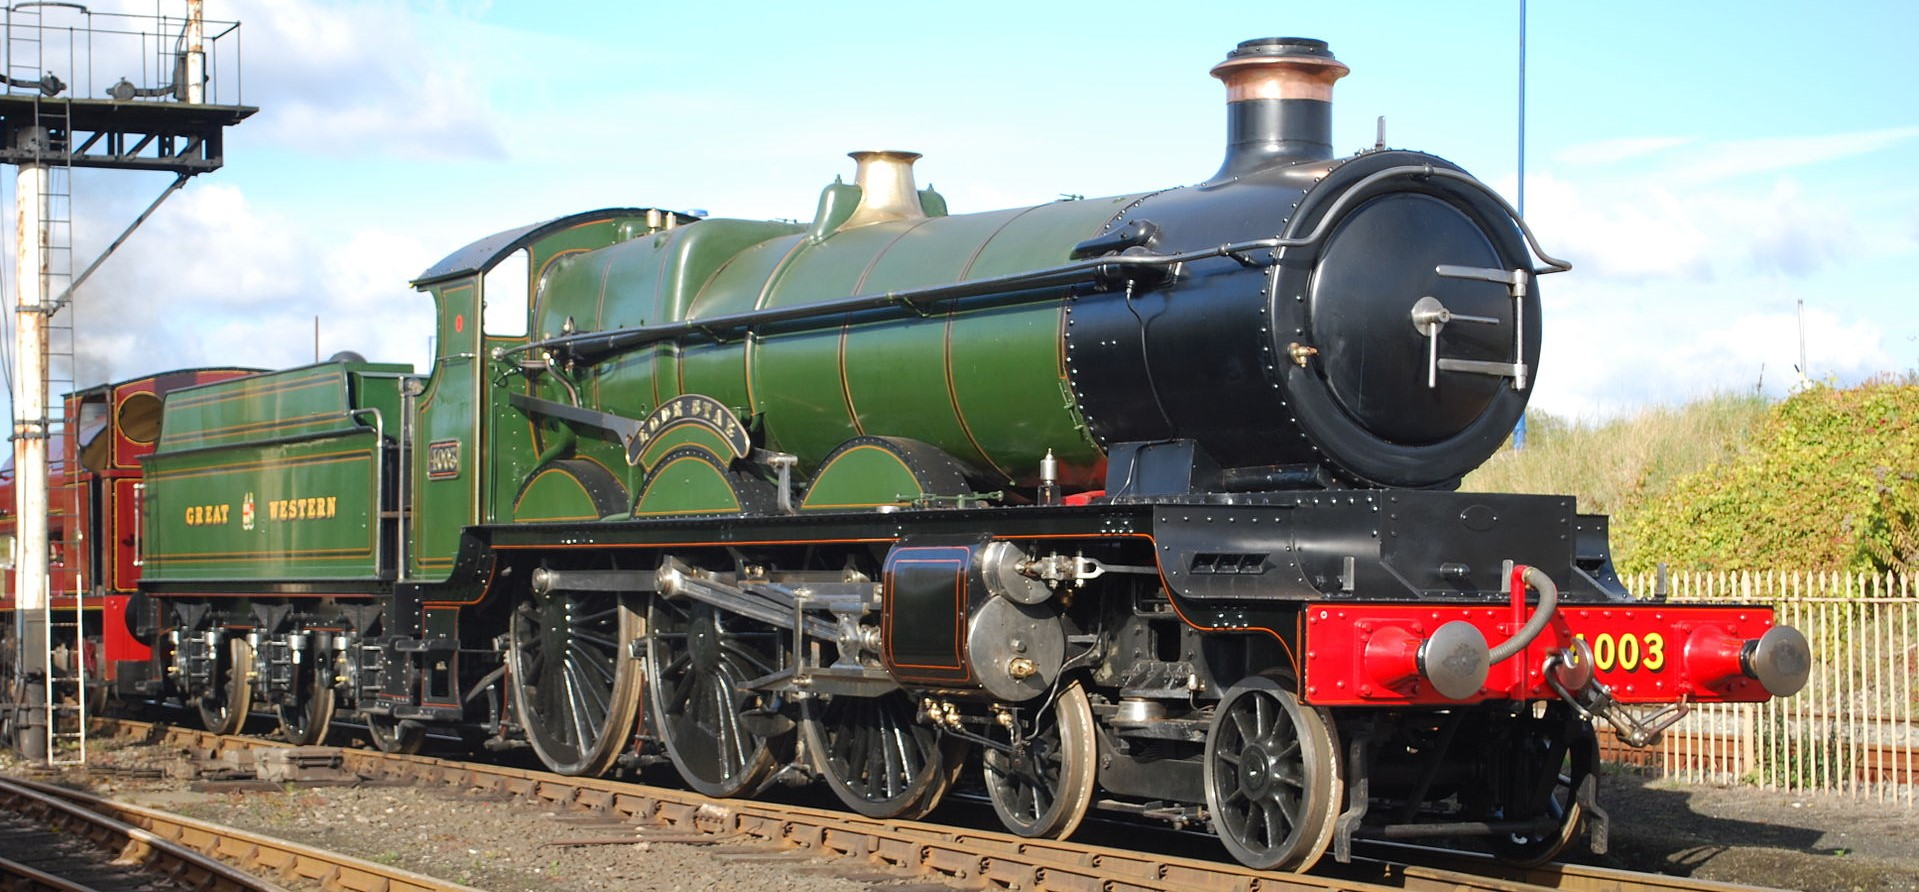 4003 'Lode Star' at the NRM in October 2010. © Hugh Llewelyn